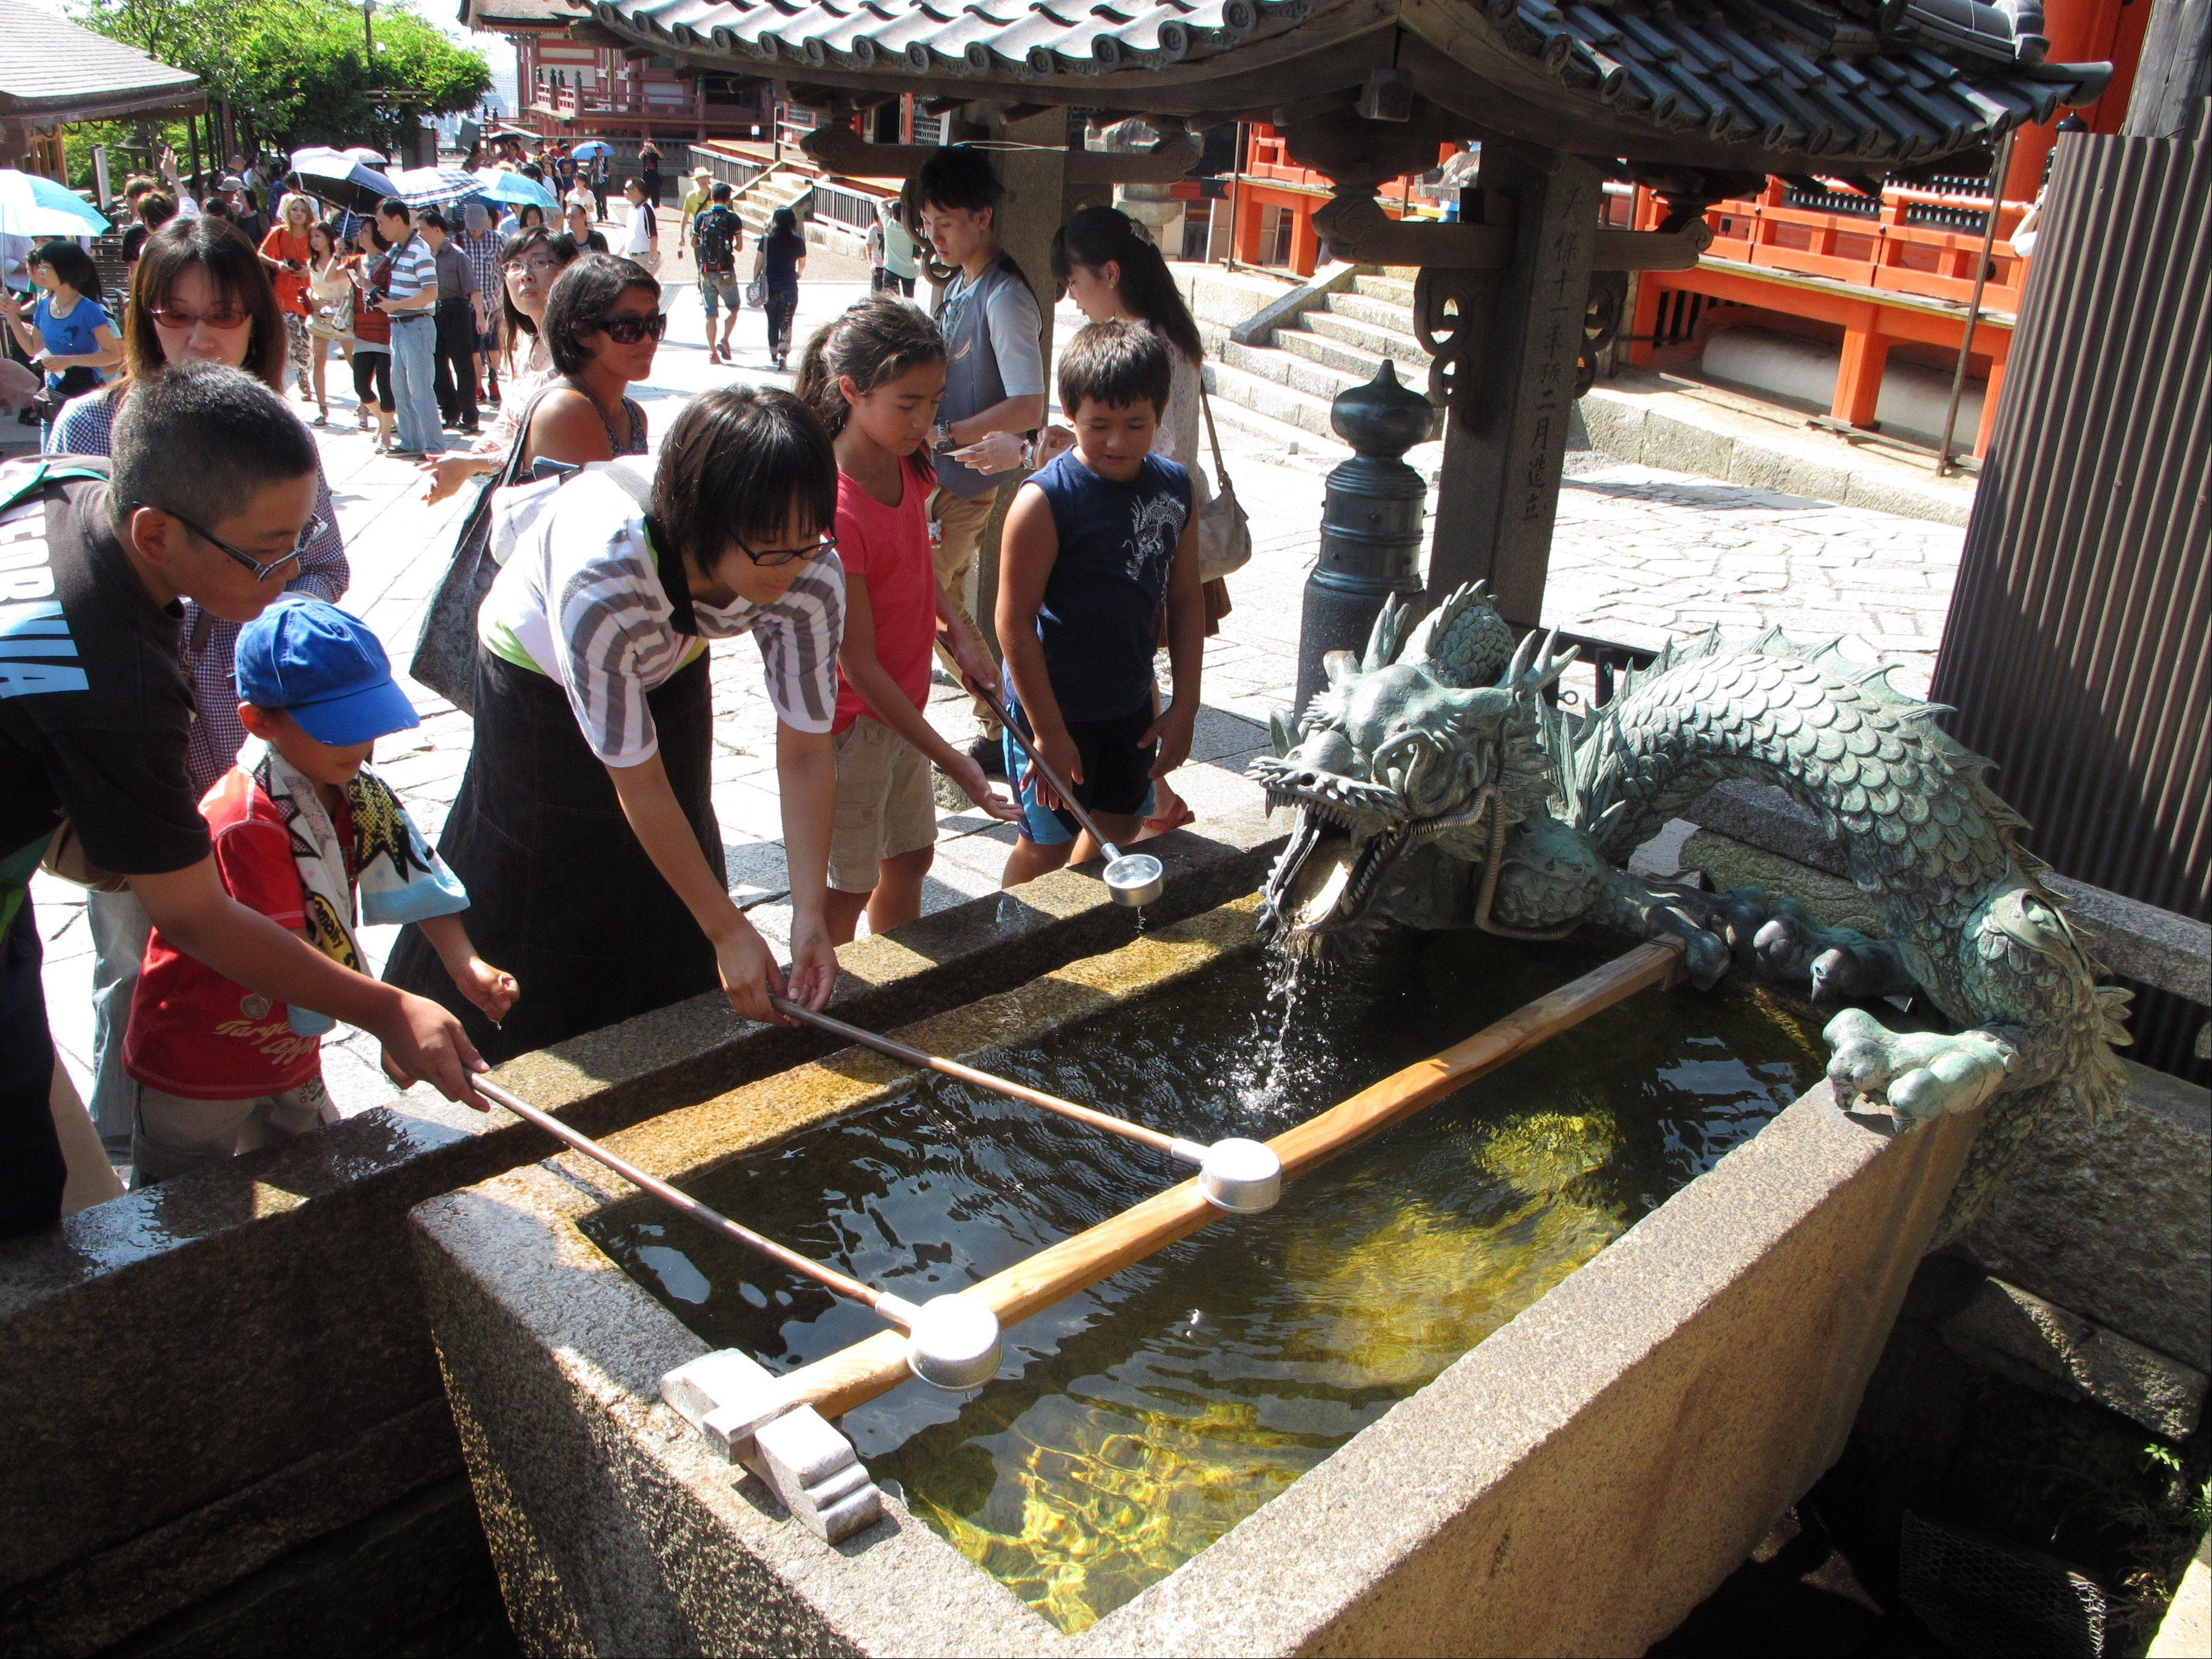 Visitors scoop water from a fountain near the entrance to Kiyomizu Temple in Kyoto.